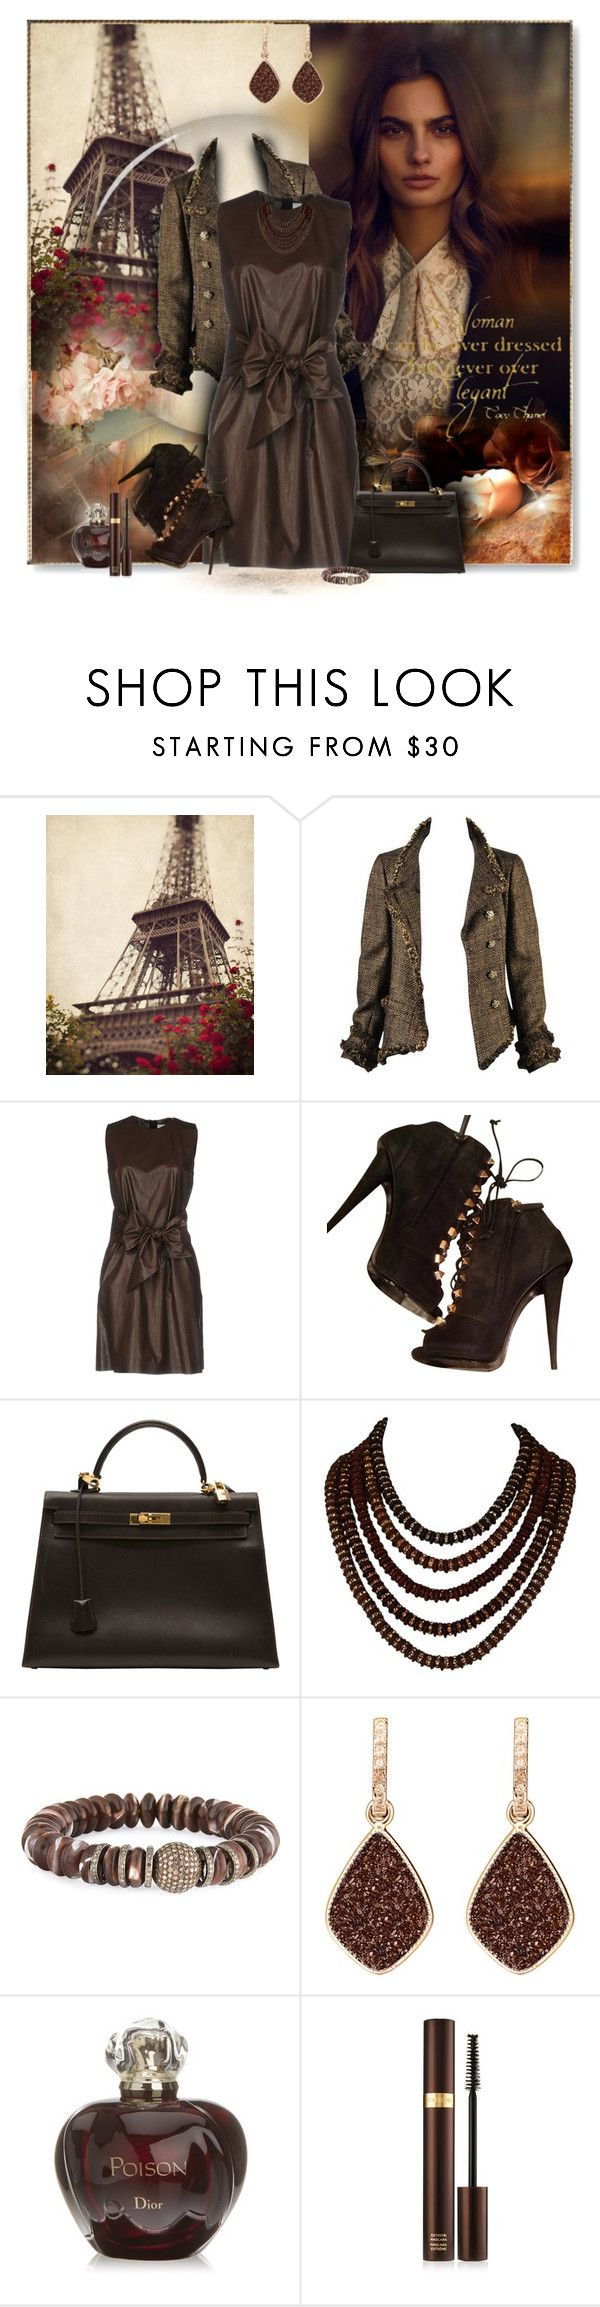 """Brown eyes"" by perla57 ❤ liked on Polyvore featuring Chanel, MSGM, Giuseppe Zanotti, Hermès, Sheryl Lowe, H.Azeem, Christian Dior and Tom Ford"